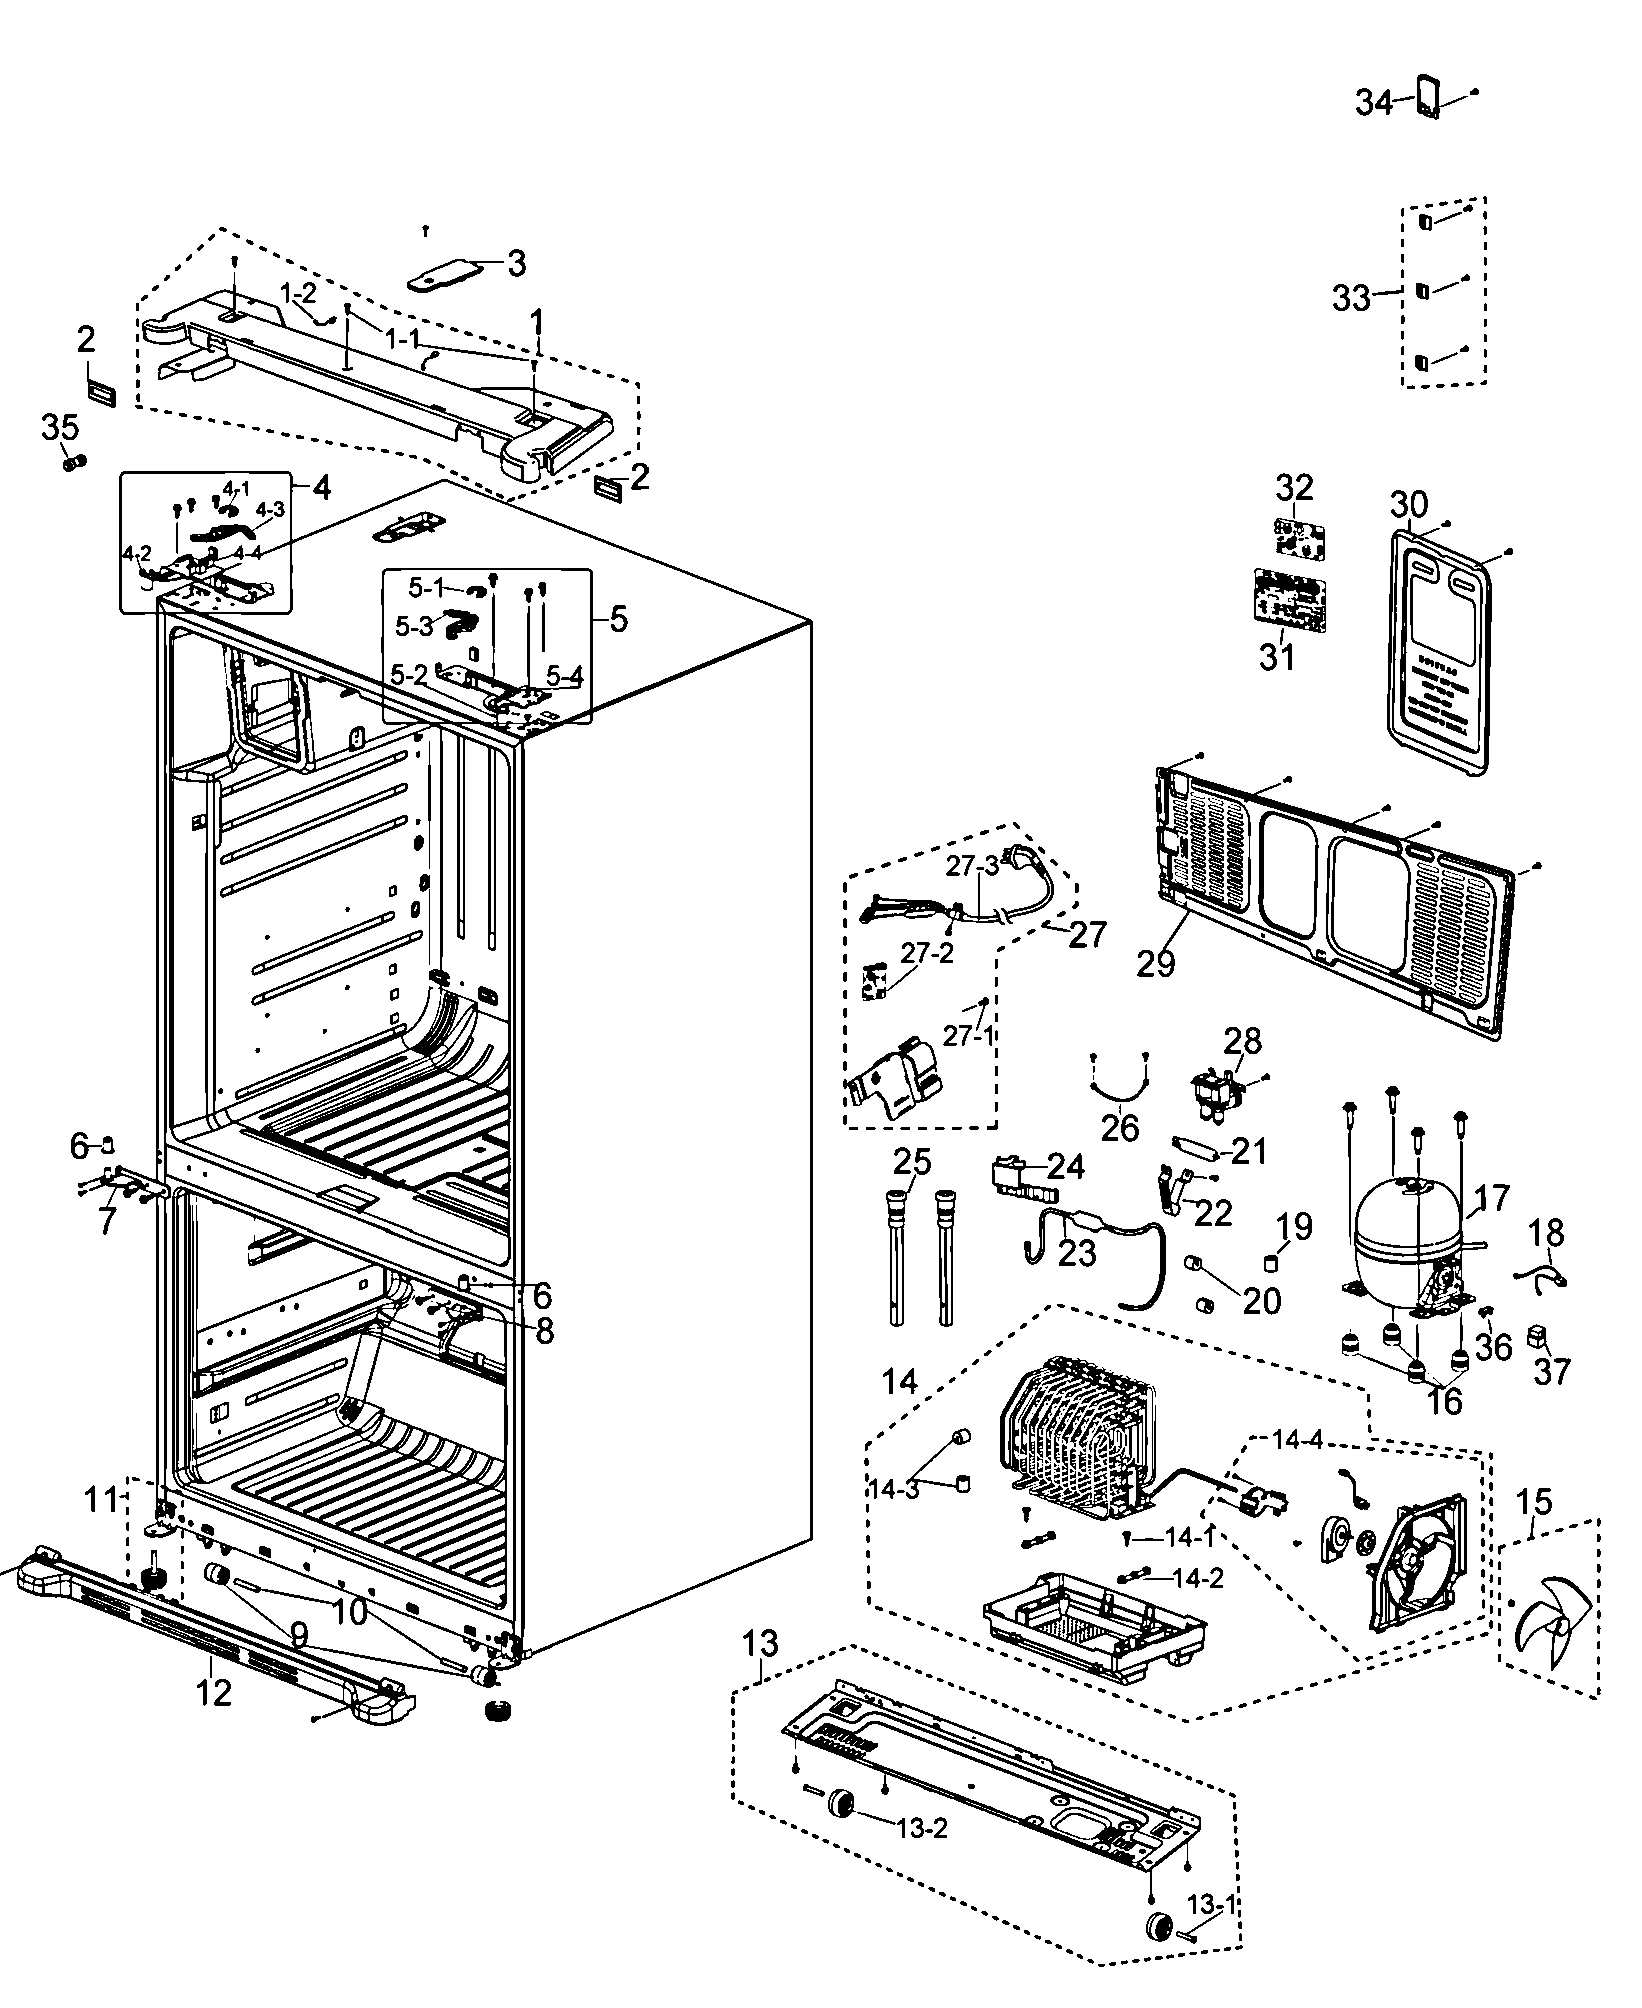 Samsung Refrigerator Wiring Schematic Auto Electrical Diagram For Related With